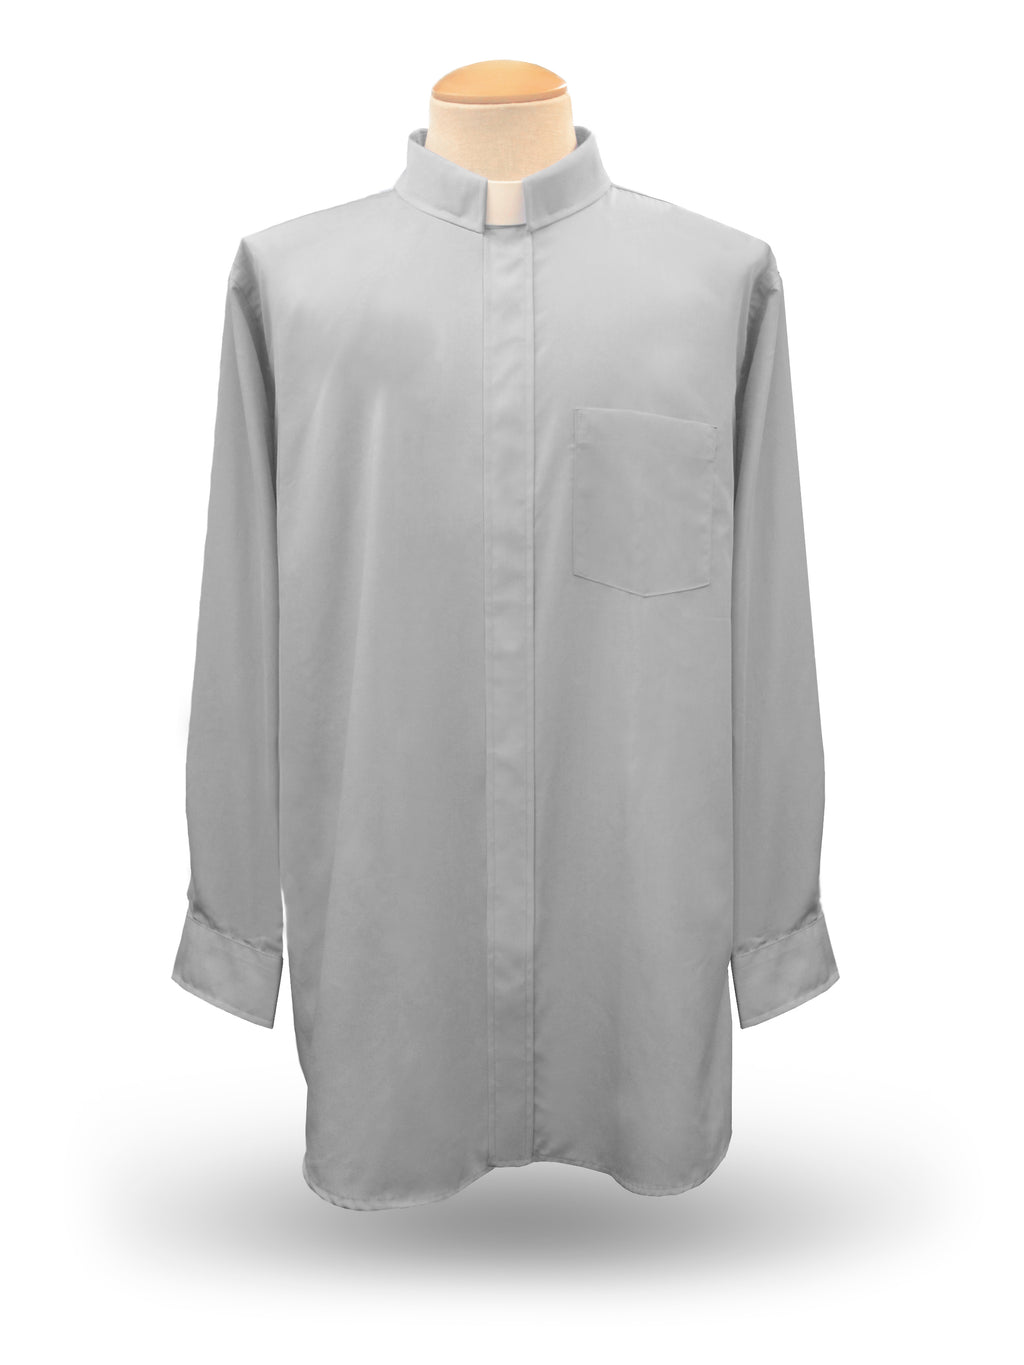 Men's Long Sleeve <br> Tab Collar Clergy Shirt <br> in Grey